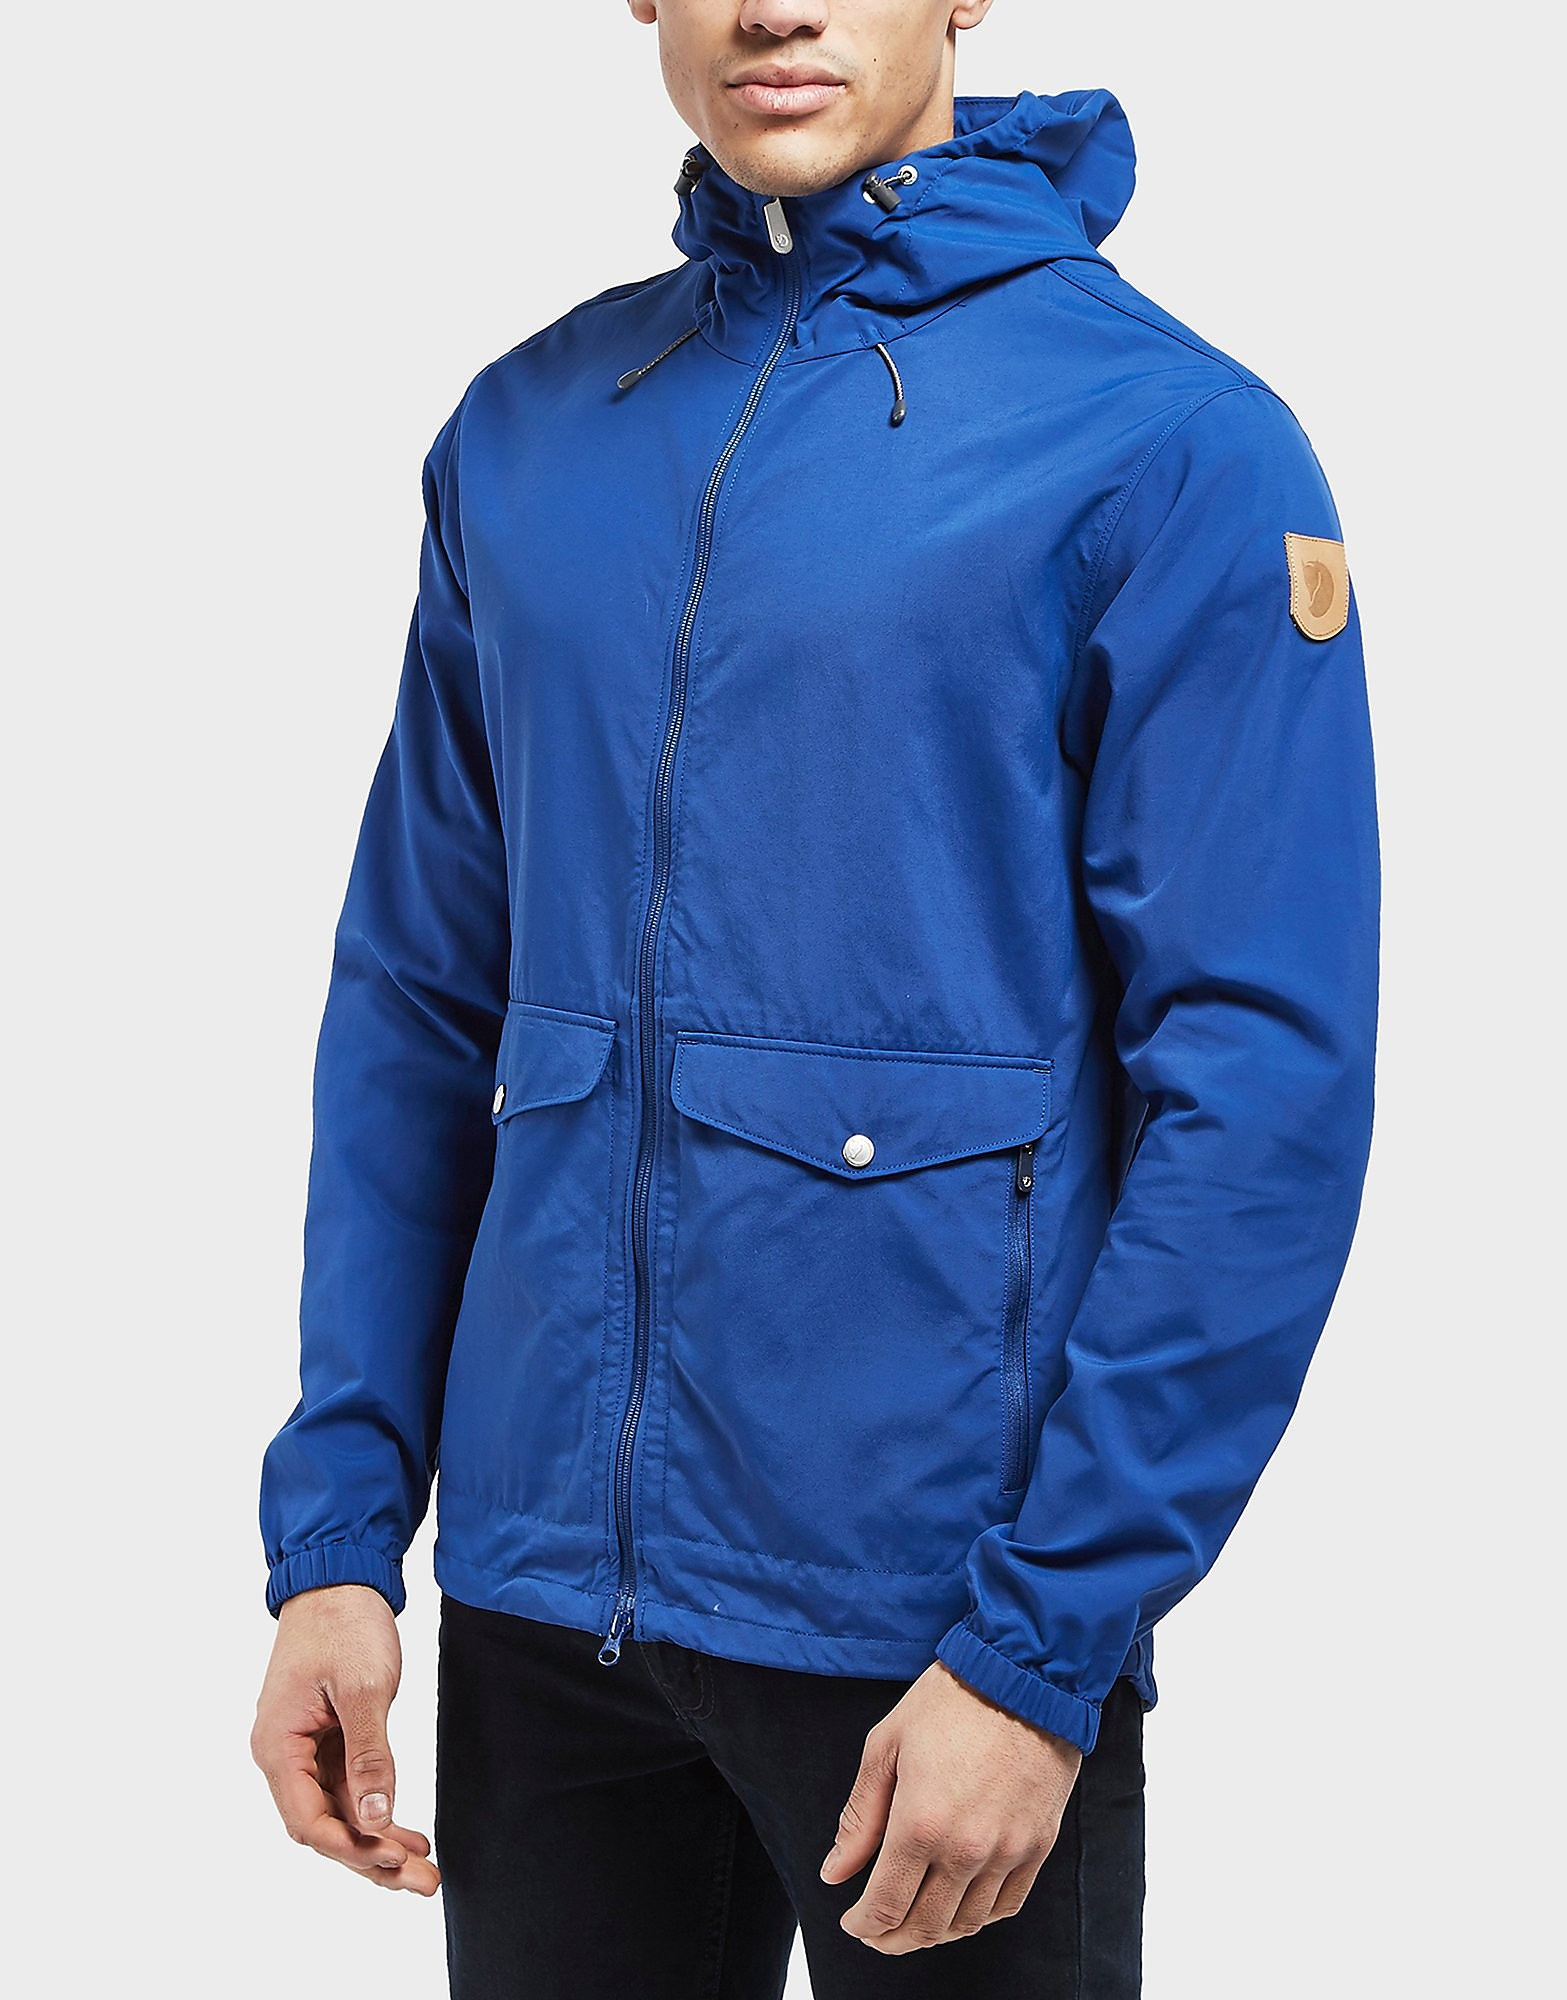 Fjallraven Greenland Lightweight Windbreaker Jacket